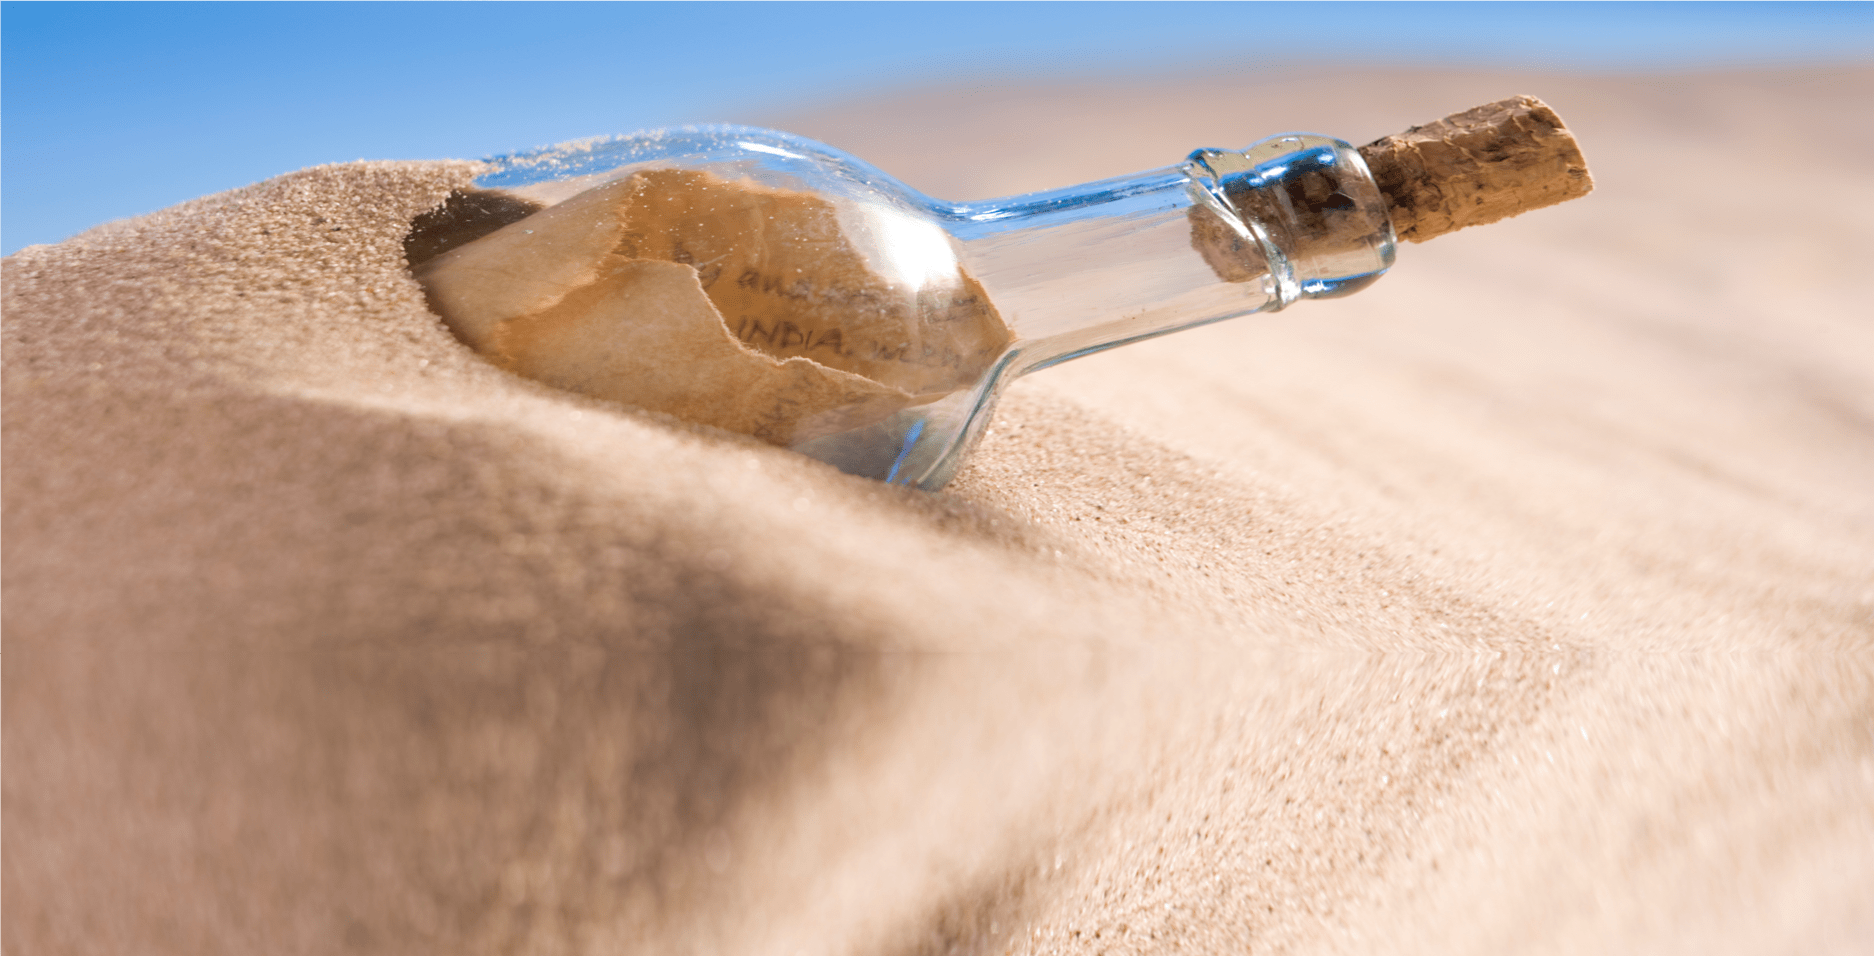 SC Message in a Bottle sand sky edited for web-min.png